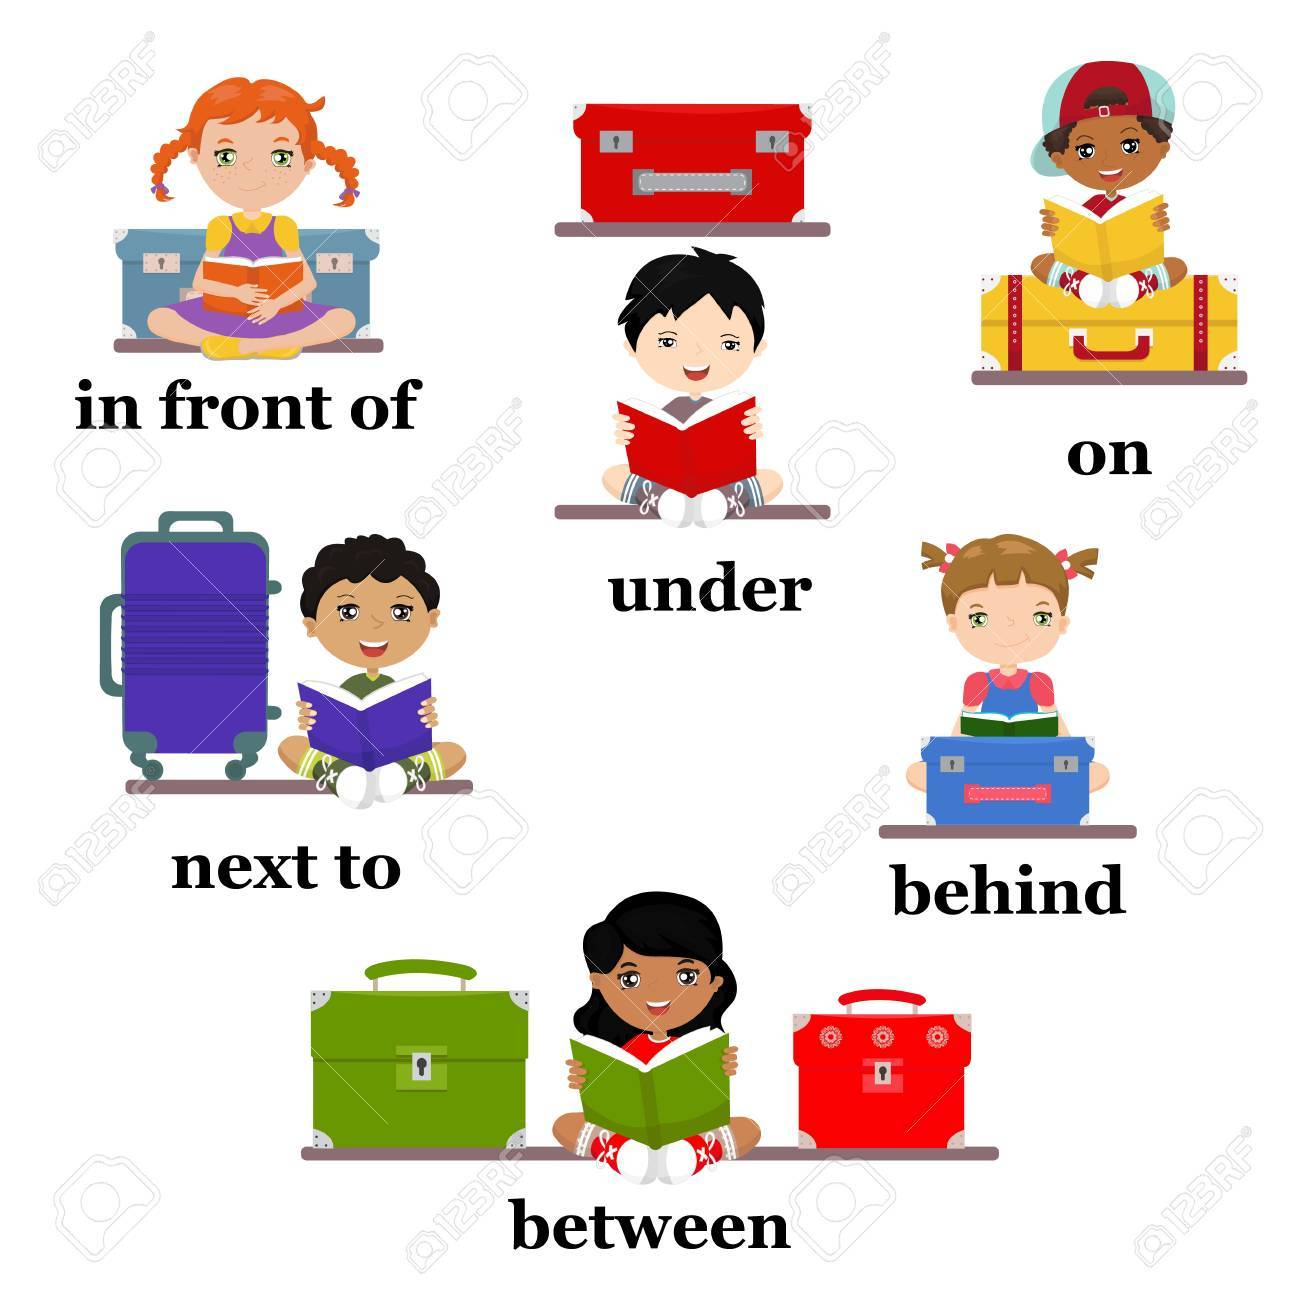 Clipart Images For Prepositions 20 Free Cliparts